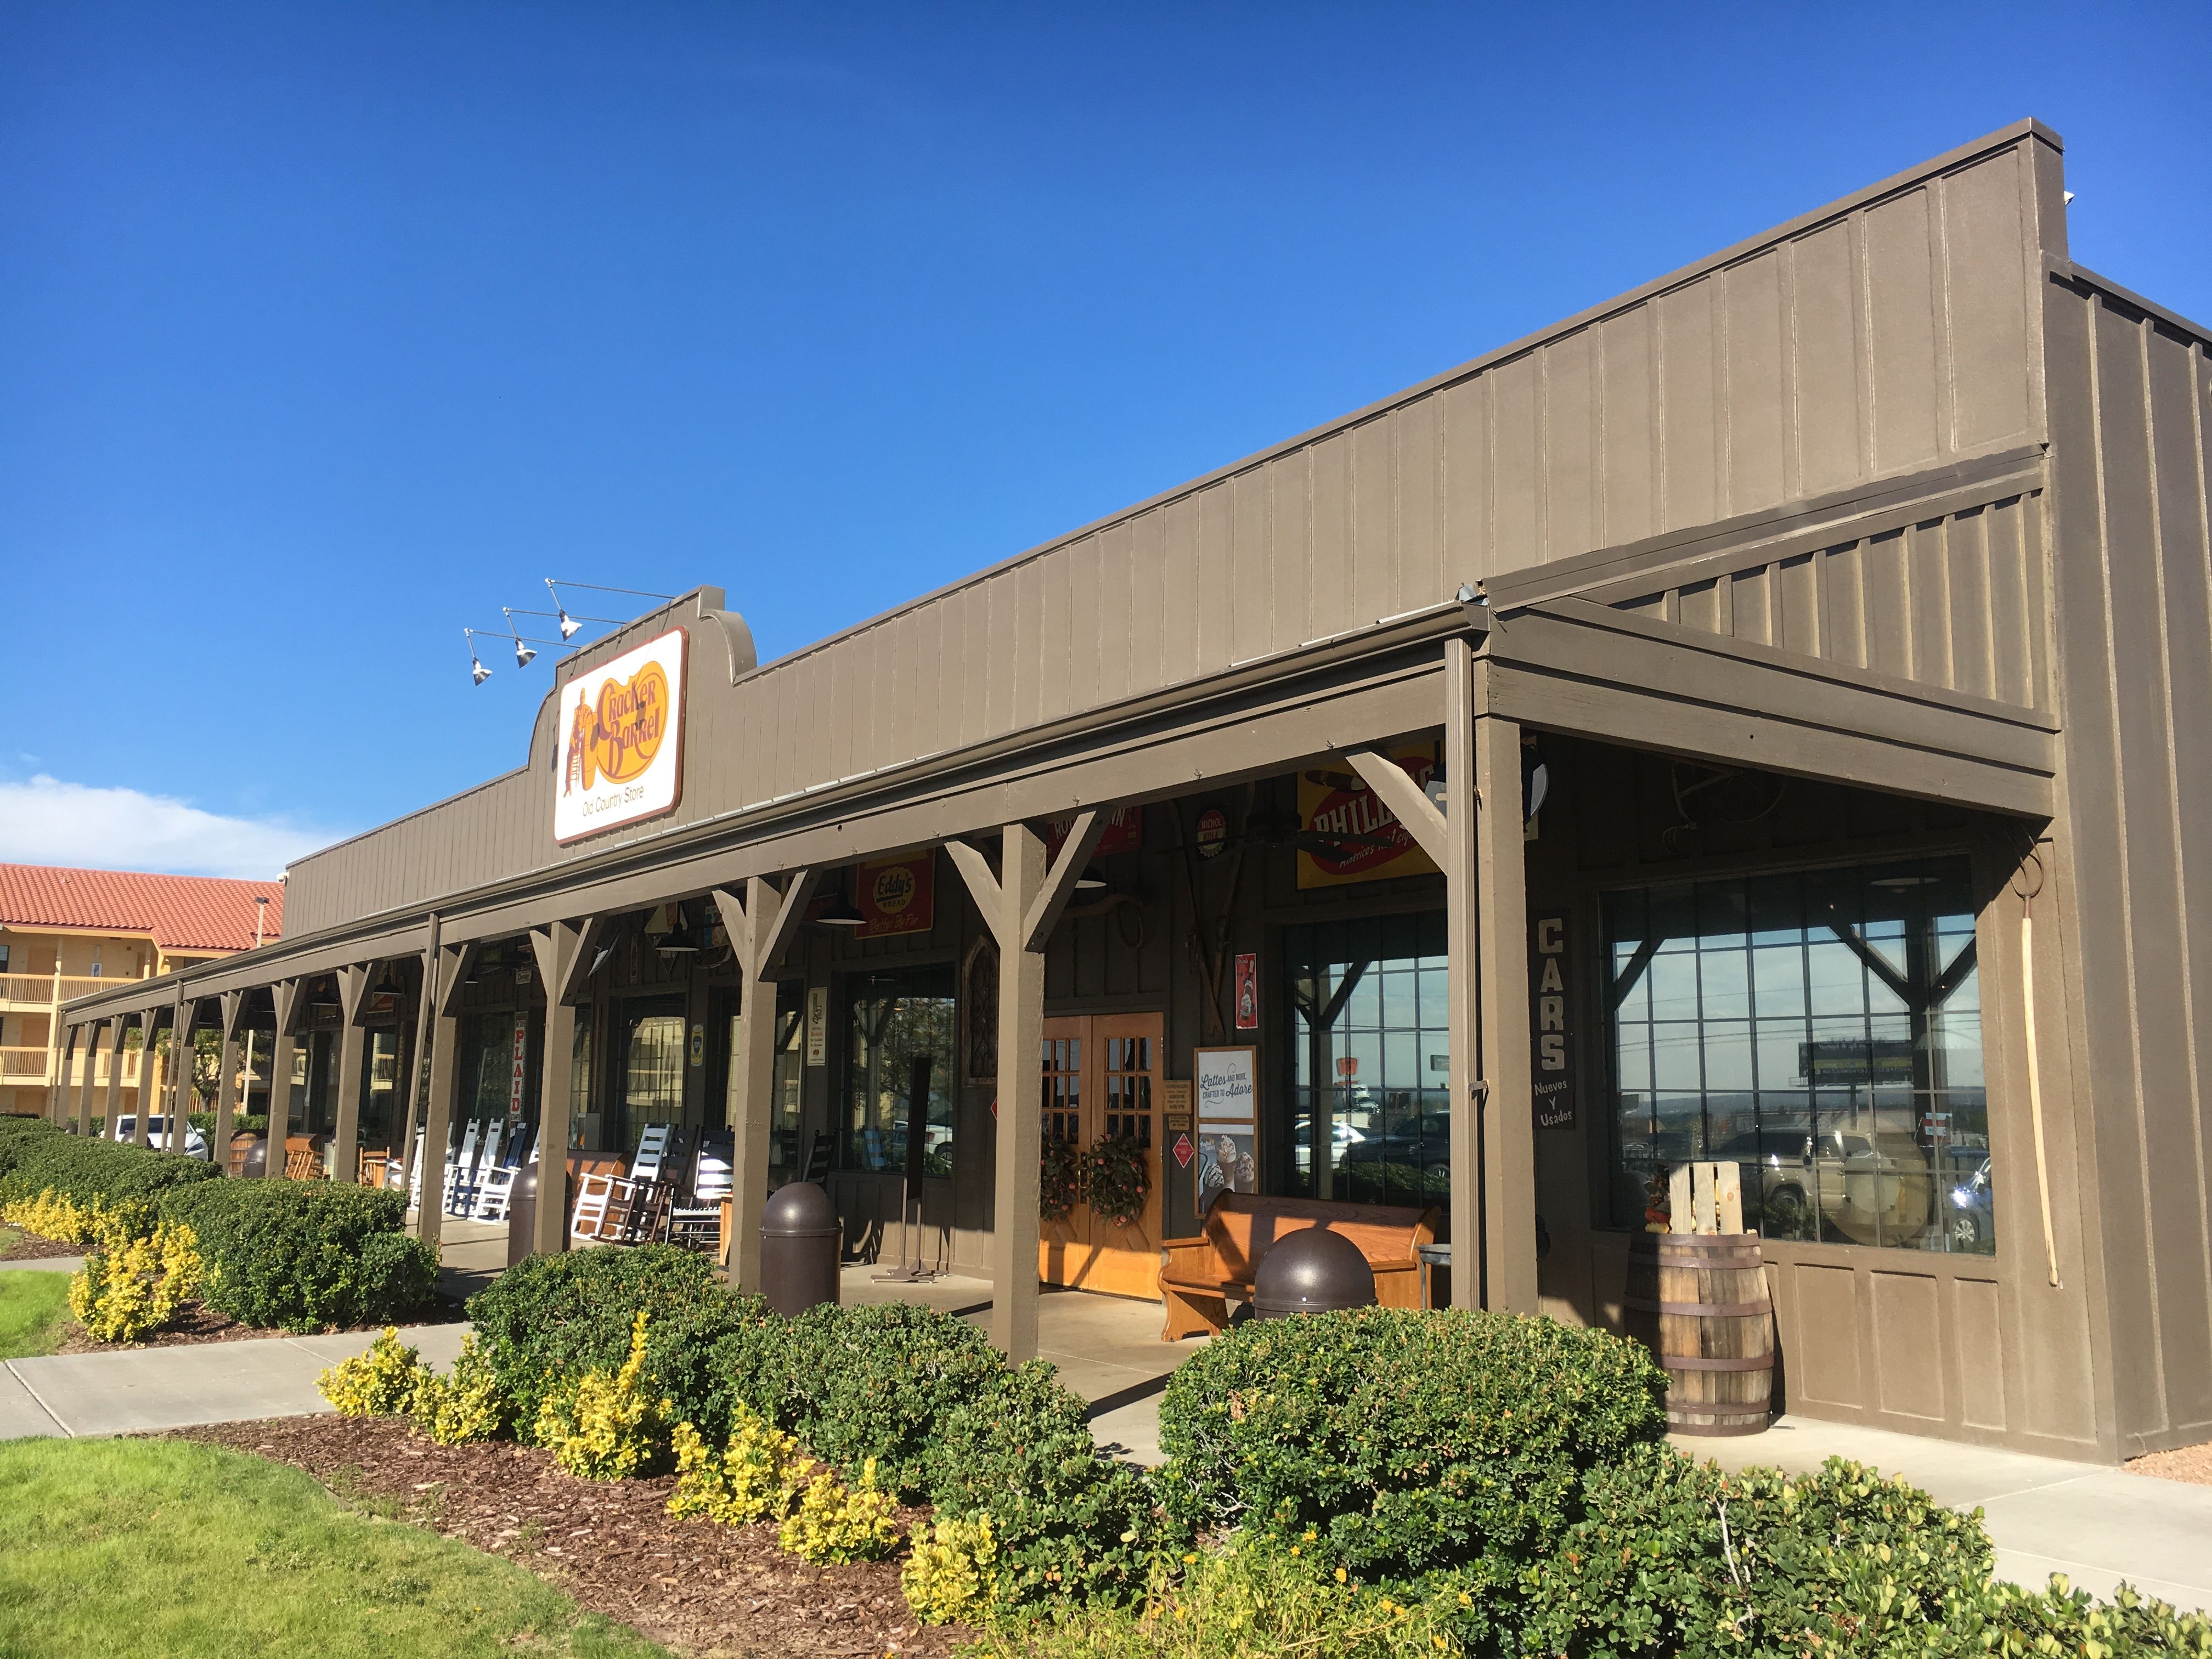 Cracker Barrel: de leukste restaurantketen in Amerika